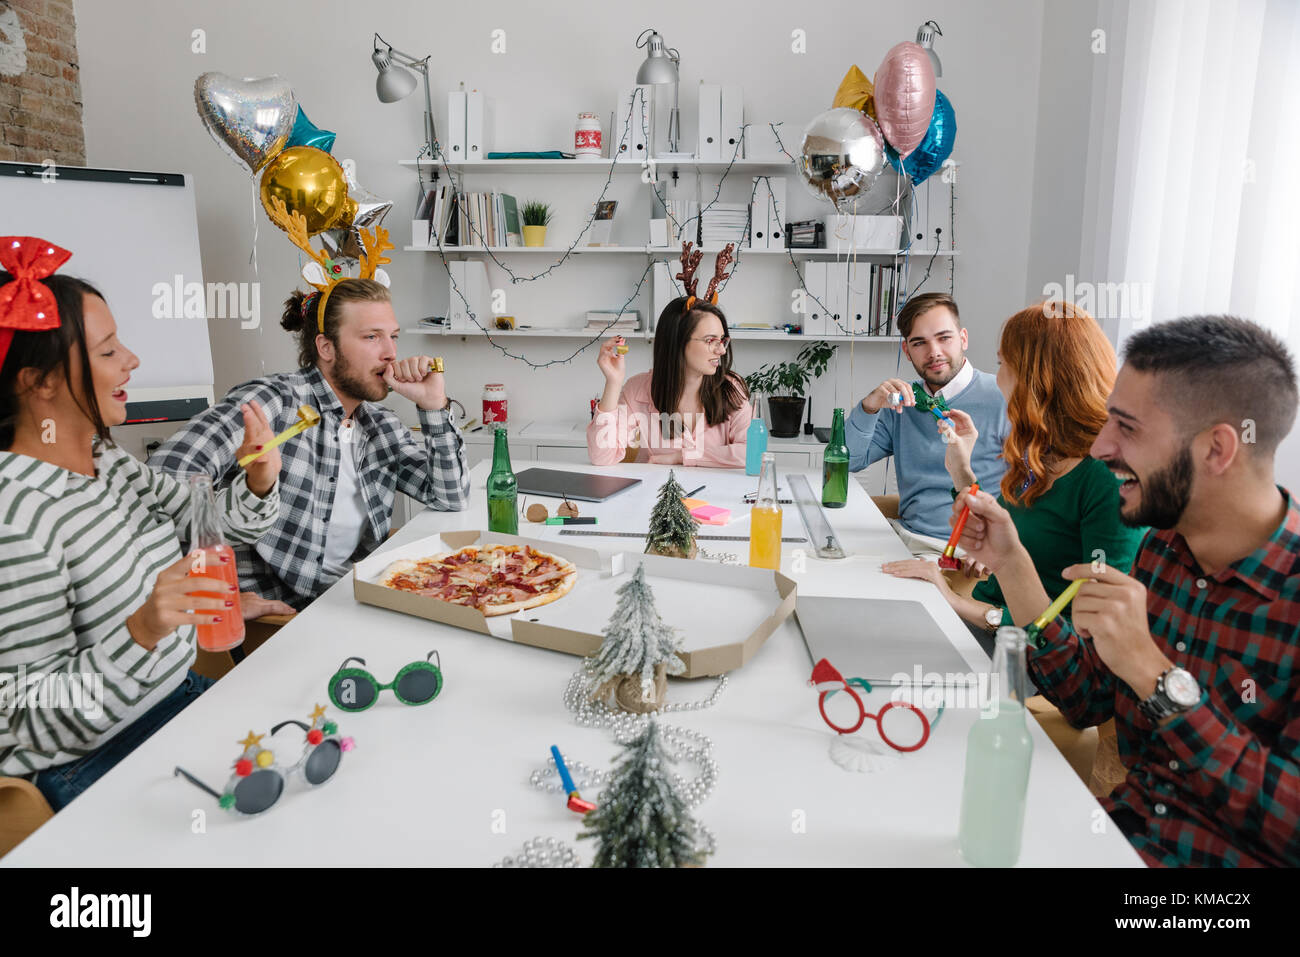 Partying at the office - Stock Image